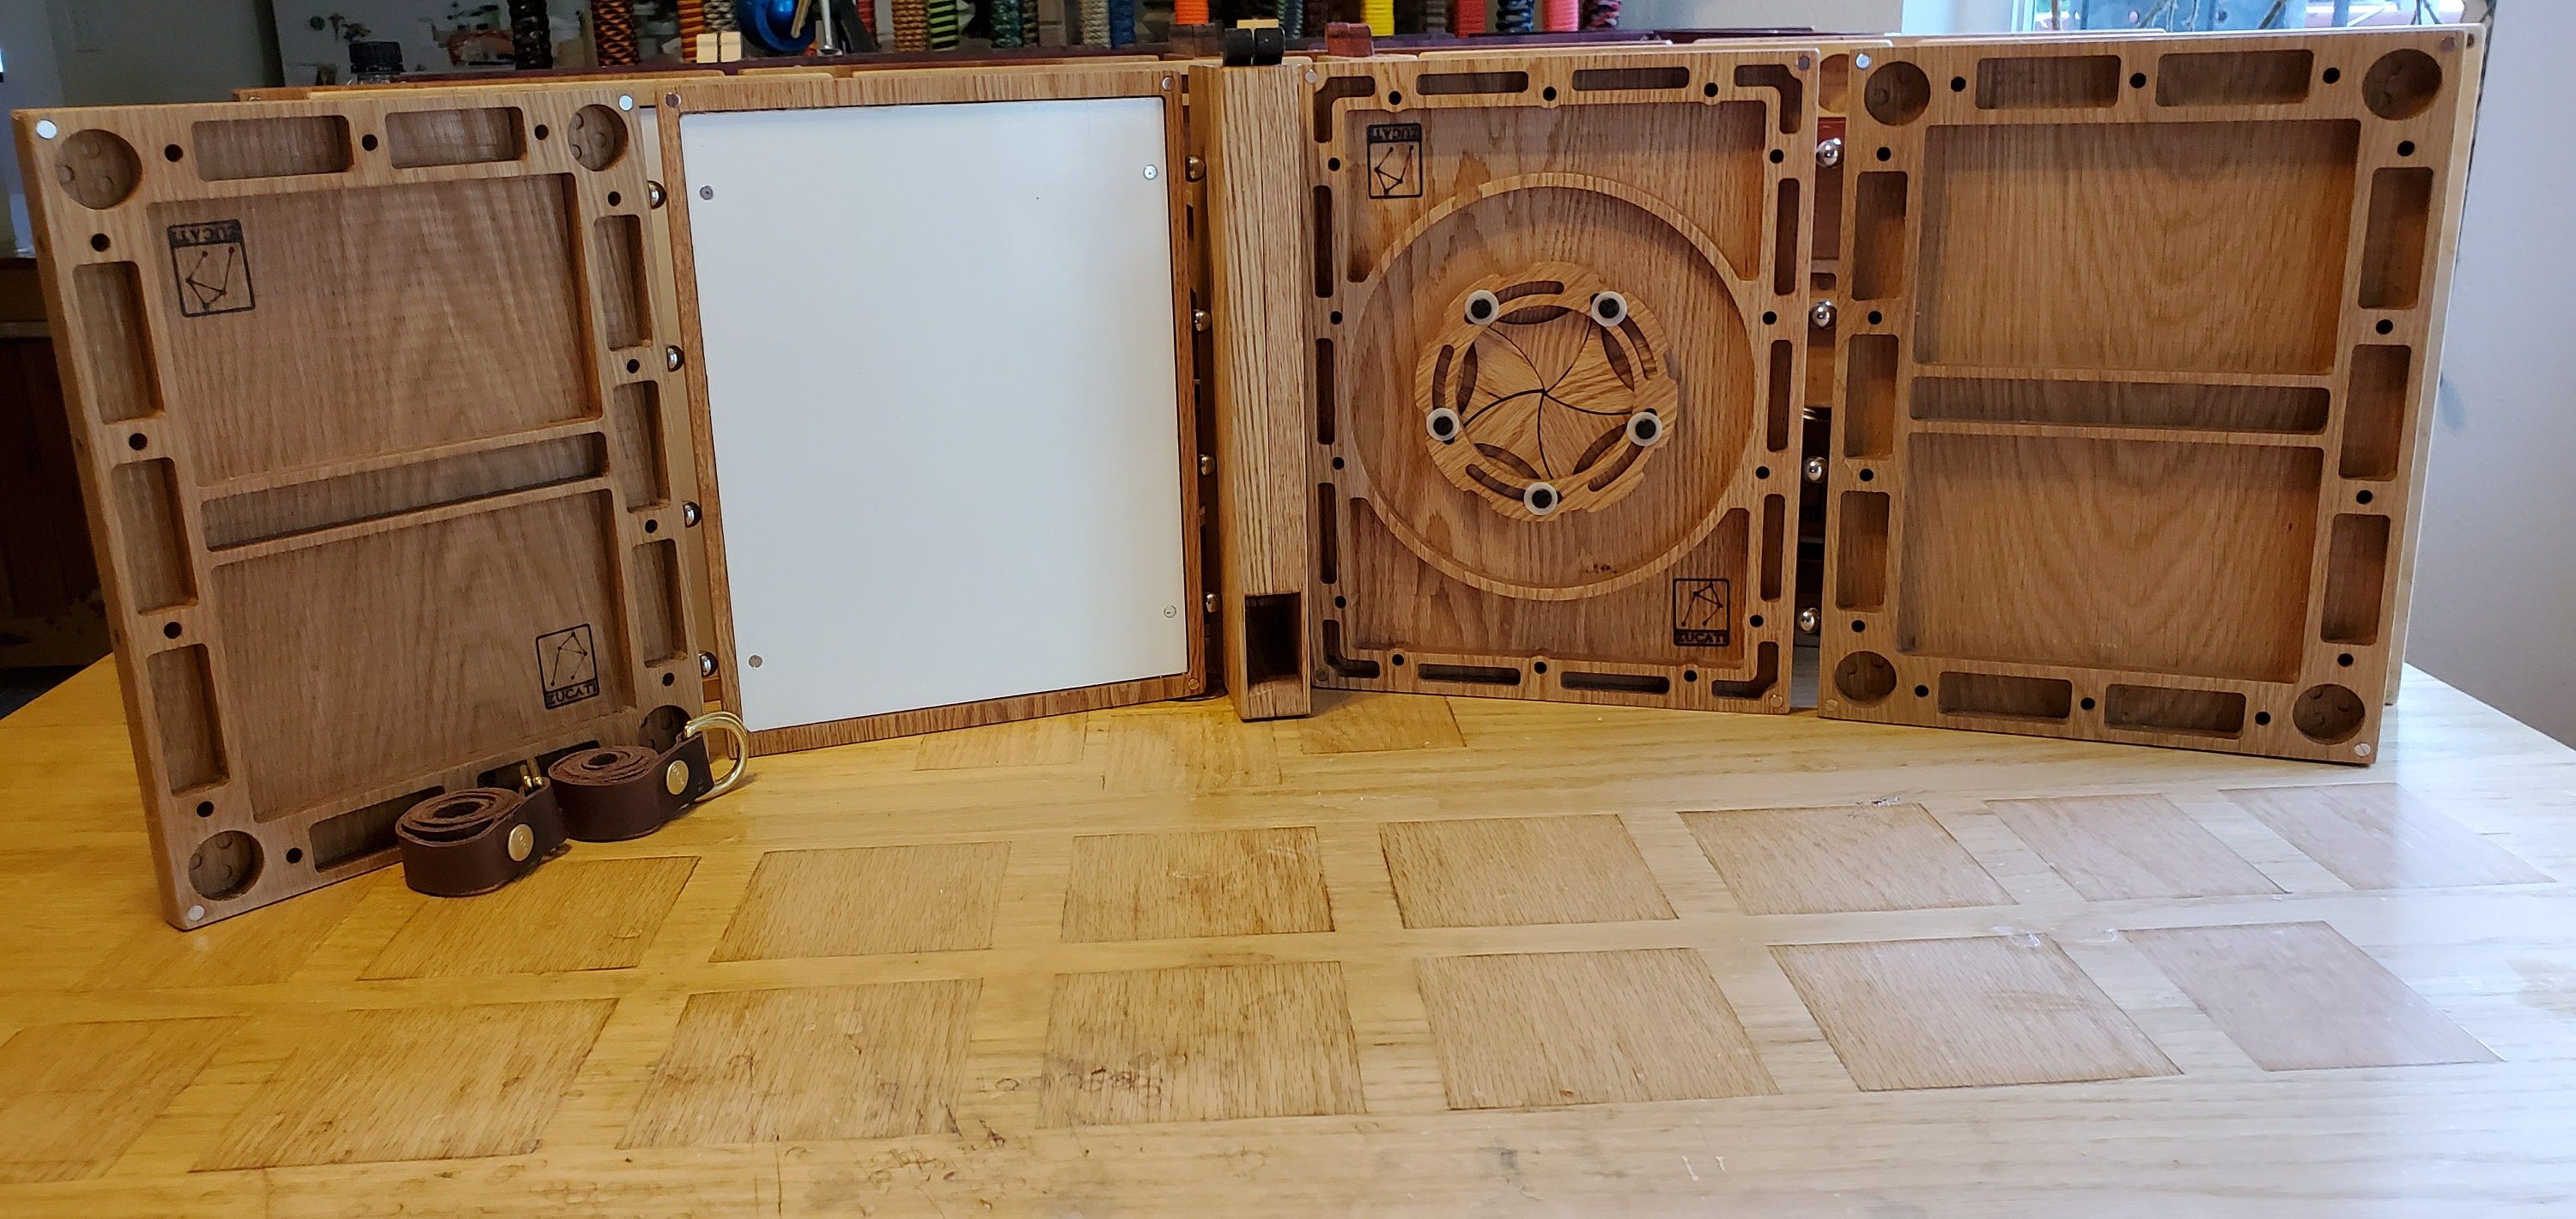 Dungeons and Dragons Master Screen - Oak